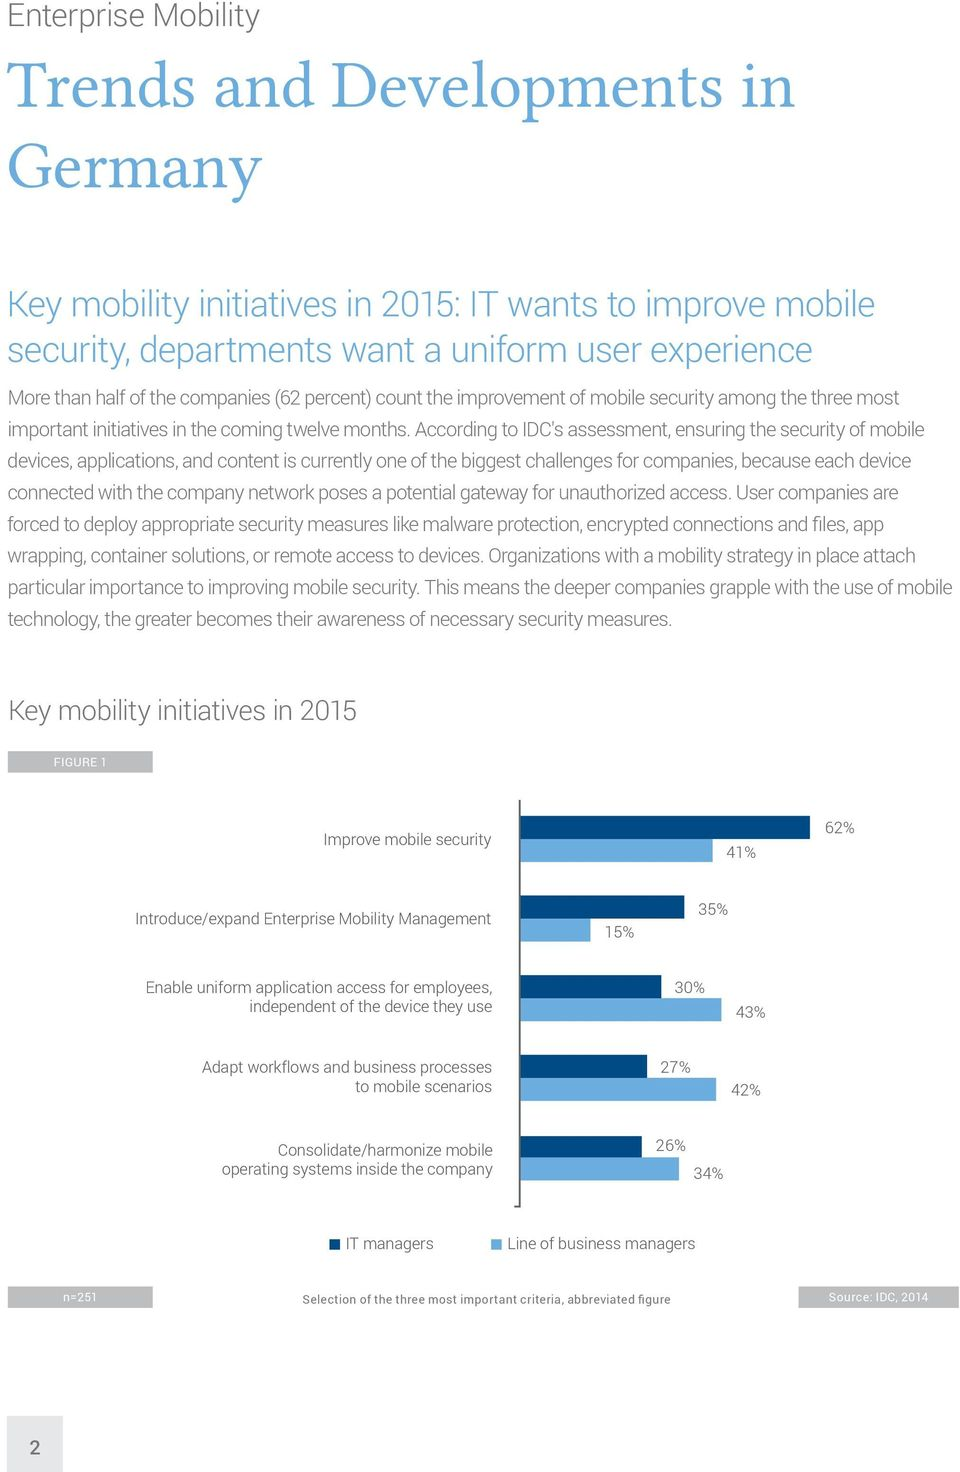 According to IDC's assessment, ensuring the security of mobile devices, applications, and content is currently one of the biggest challenges for companies, because each device connected with the